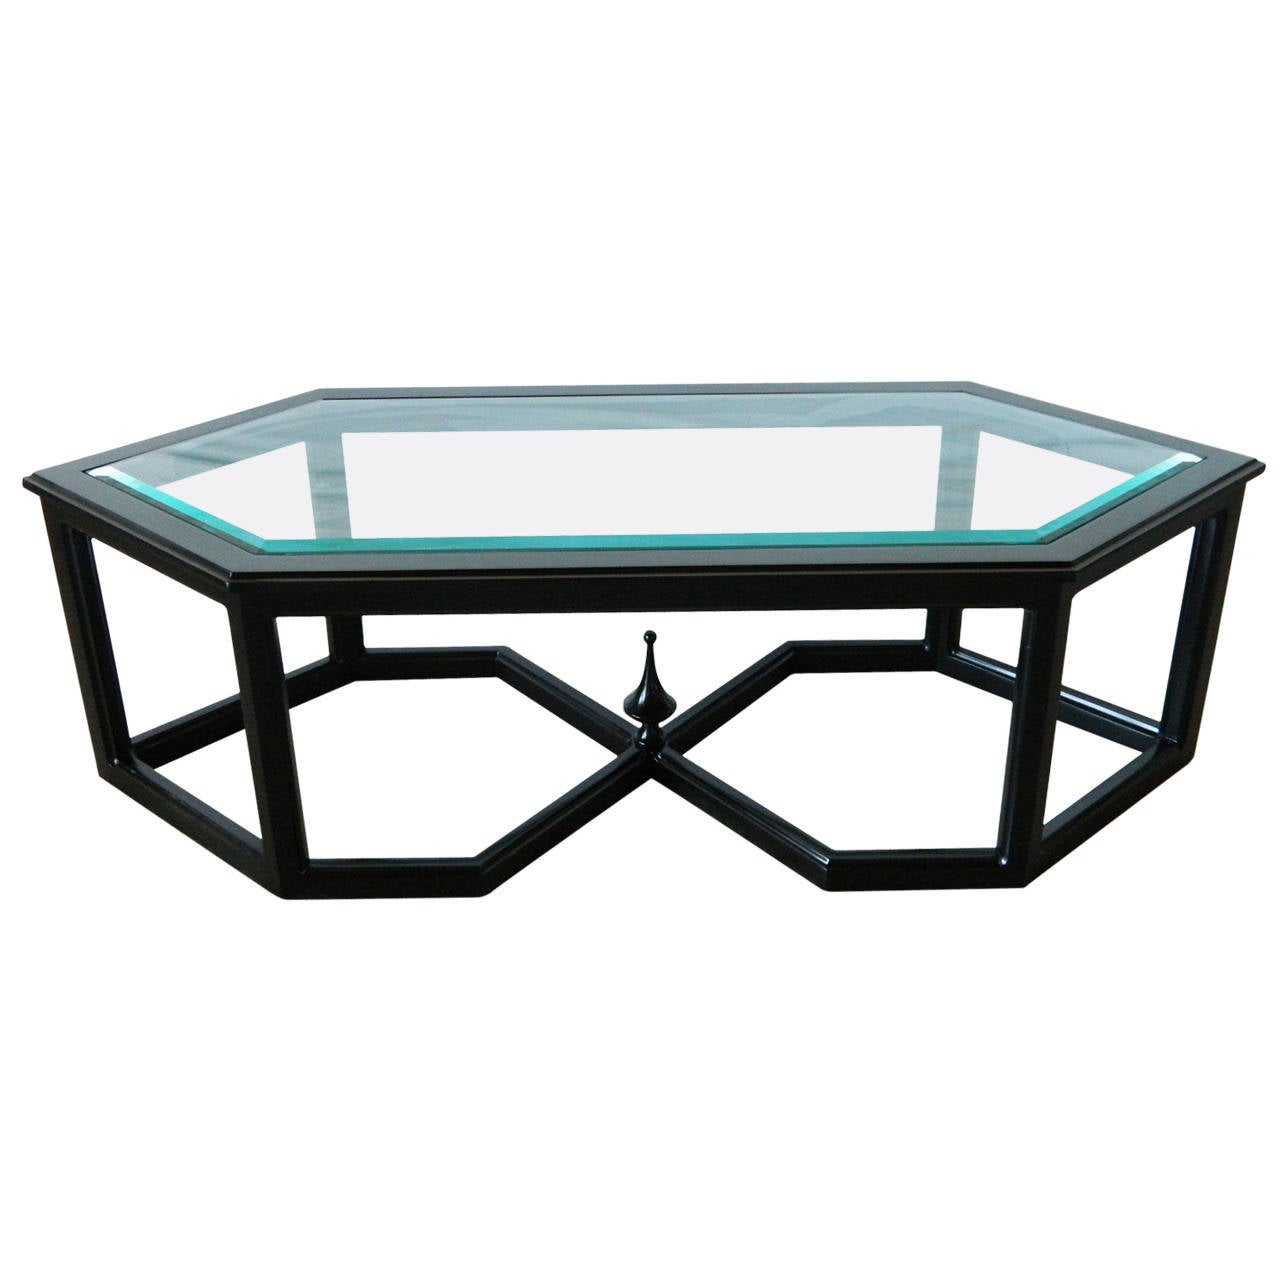 Hollywood Regency Hexagonal Bevelled Glass Coffee Table For Sale At 1stdibs